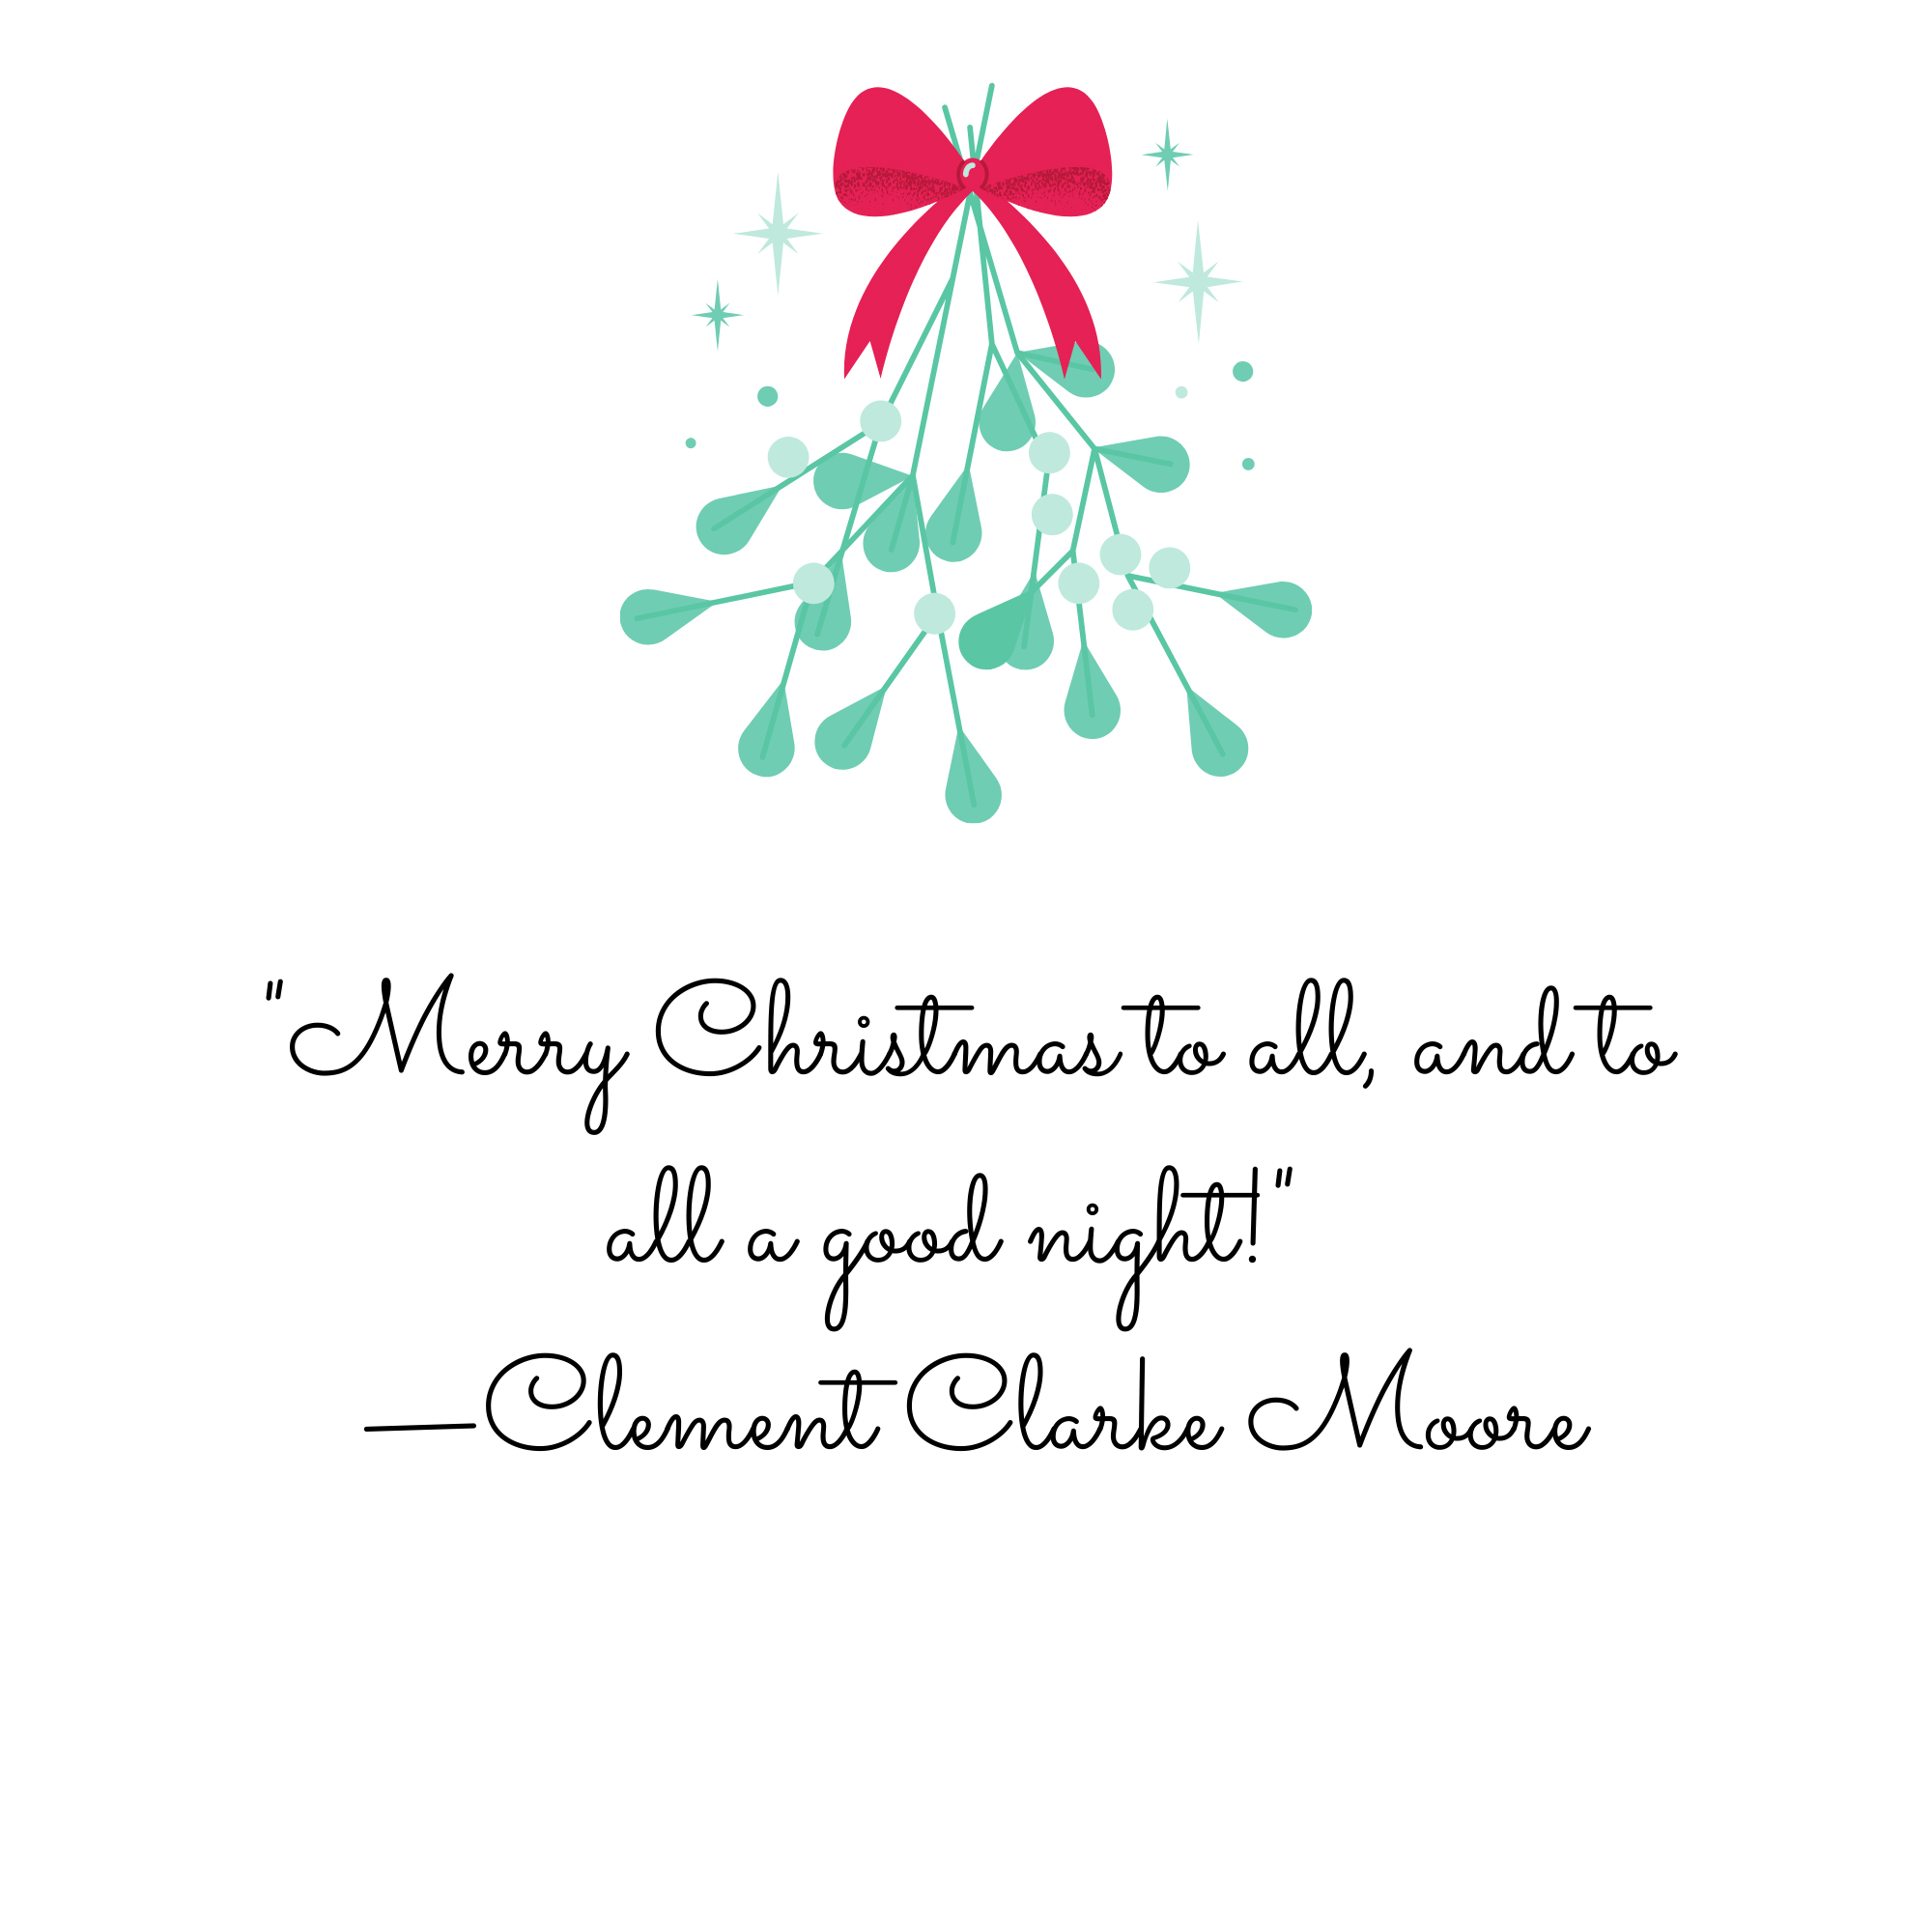 """""""Merry Christmas to all, and to all a good night!"""" —Clement Clarke Moore"""